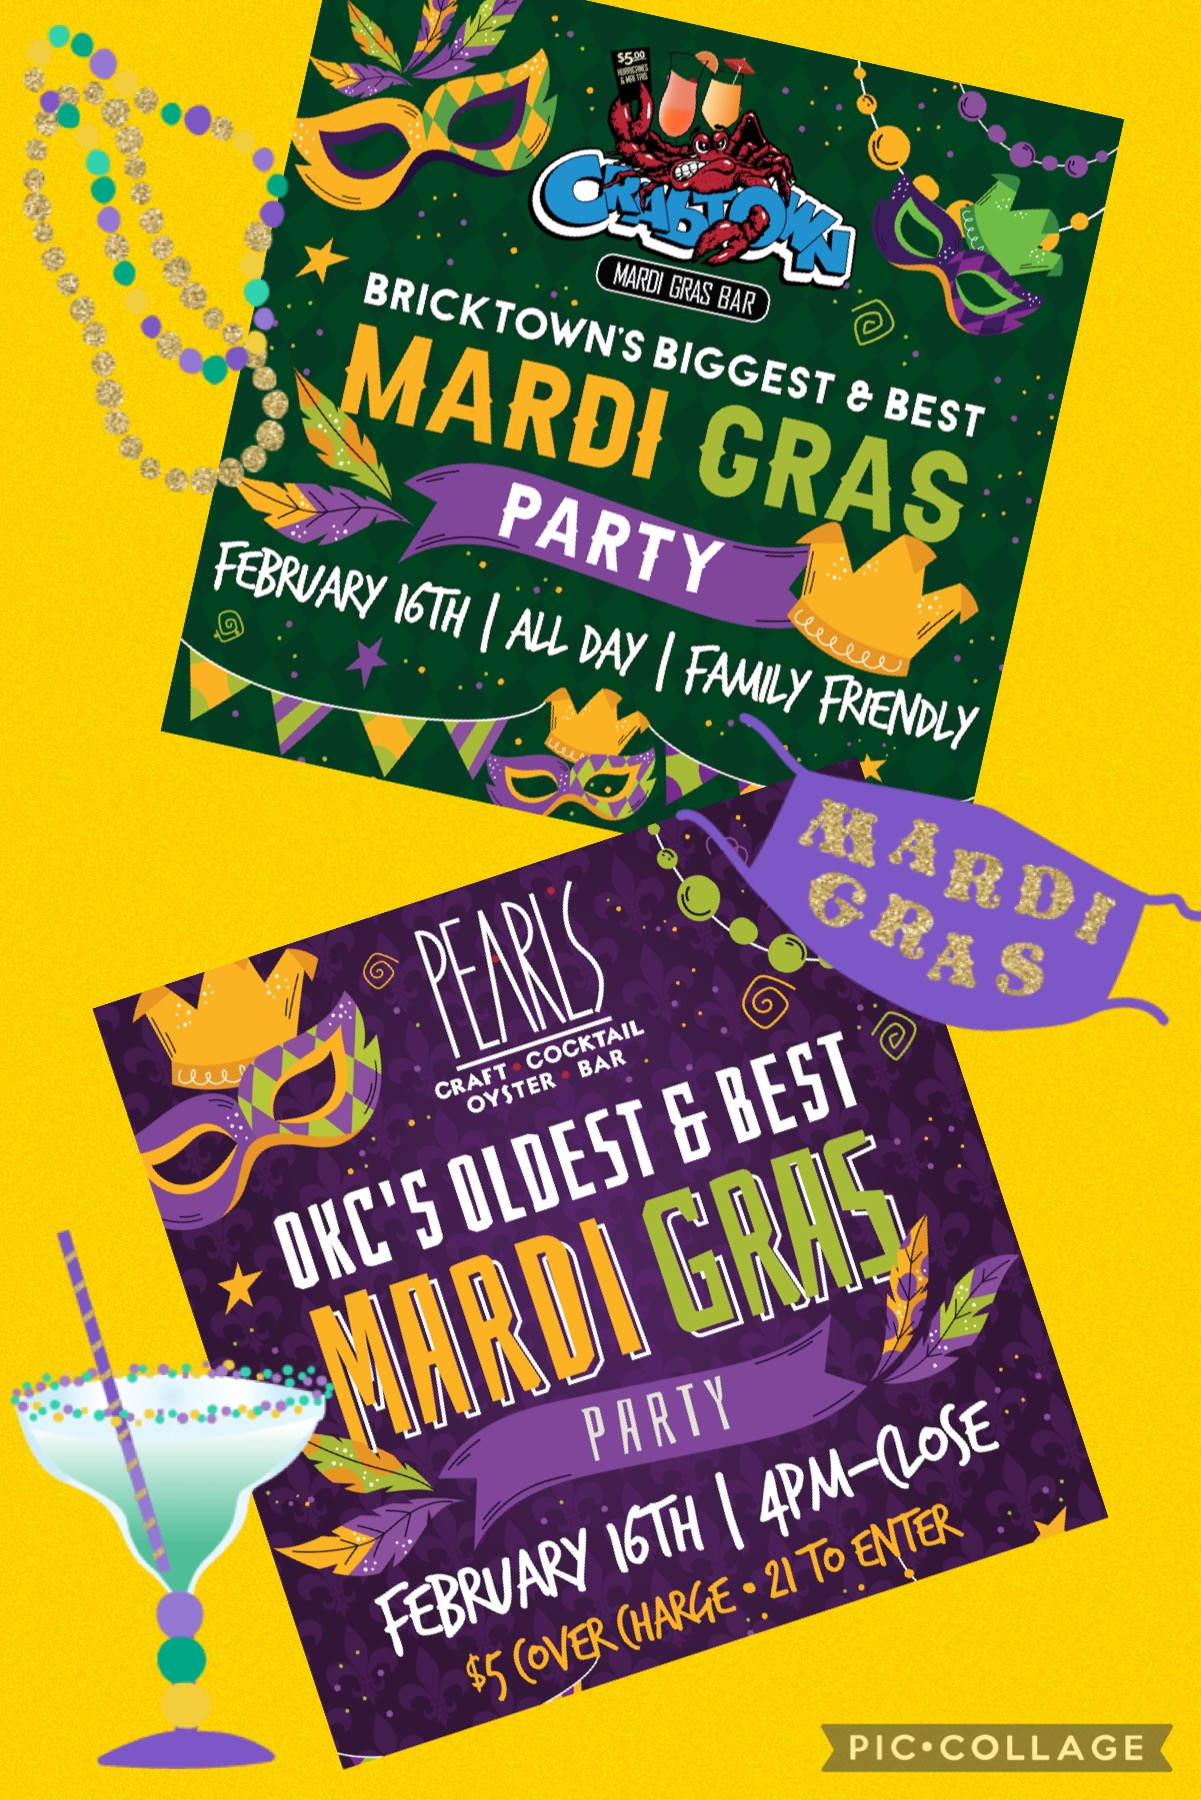 1 week until MARDI GRAS! Come Party with PRG!